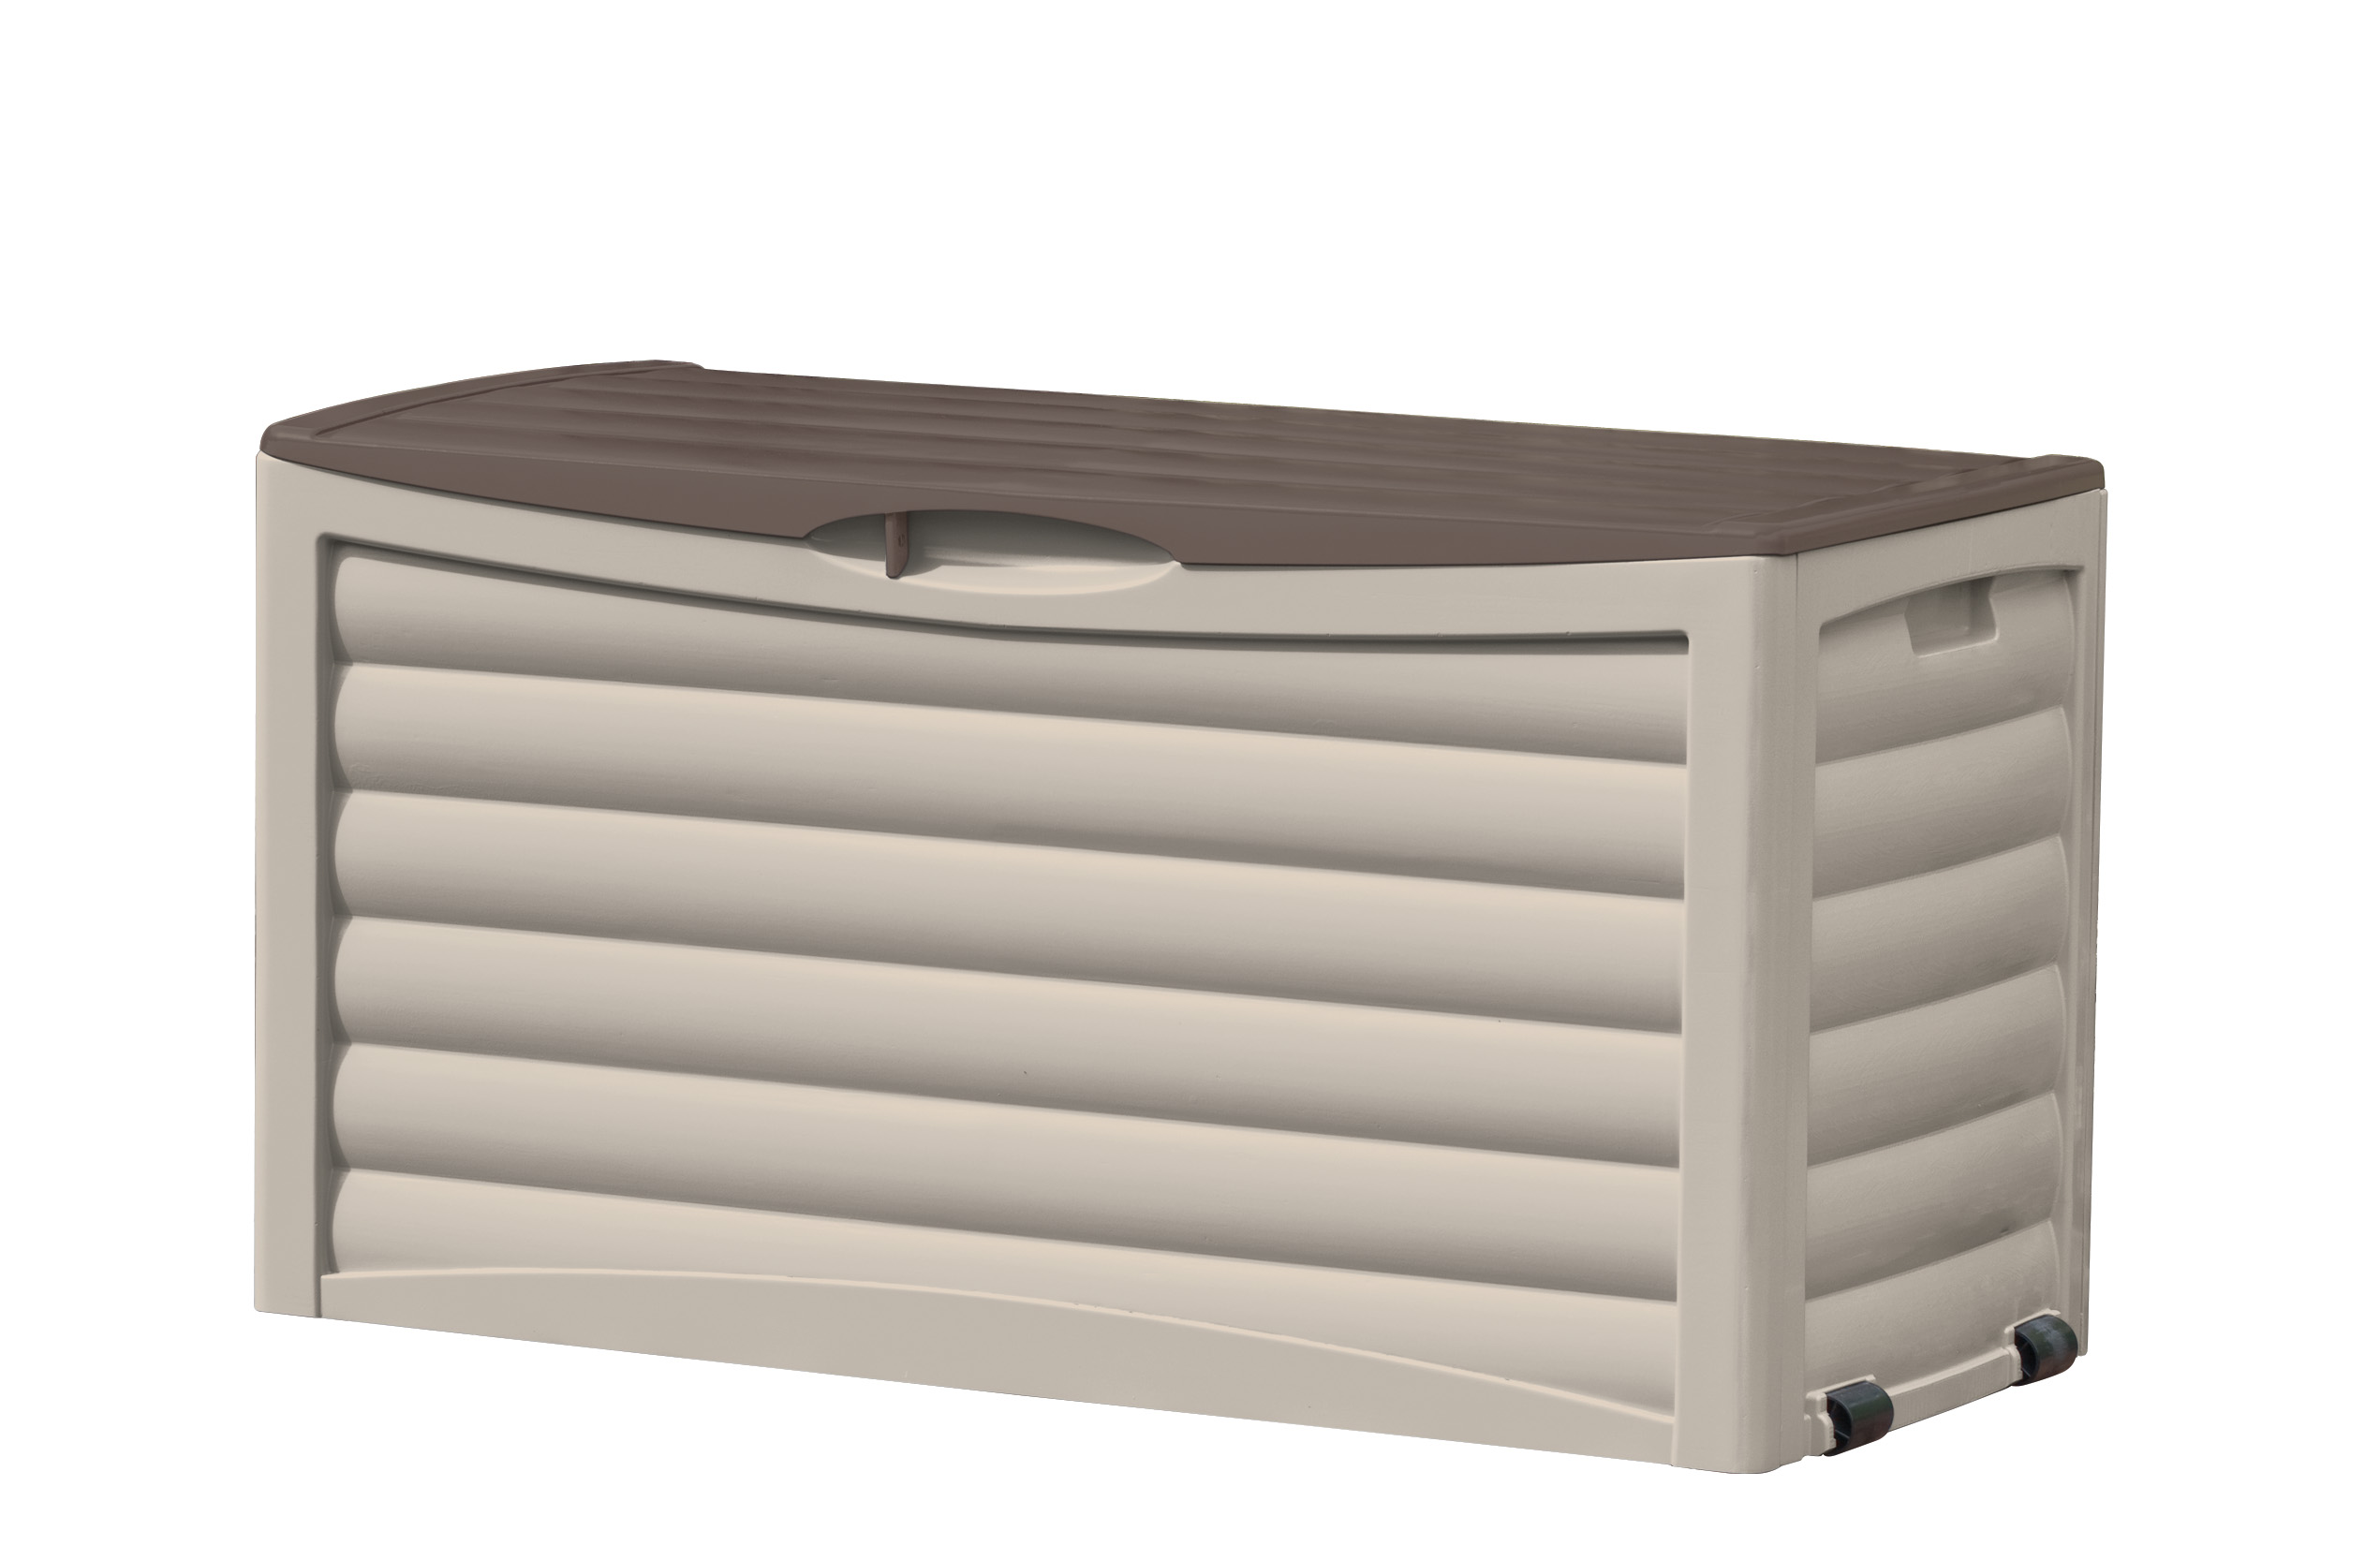 Dark Brown 74 Gallon Deck Box For Outdoor Storage All Weather Resin